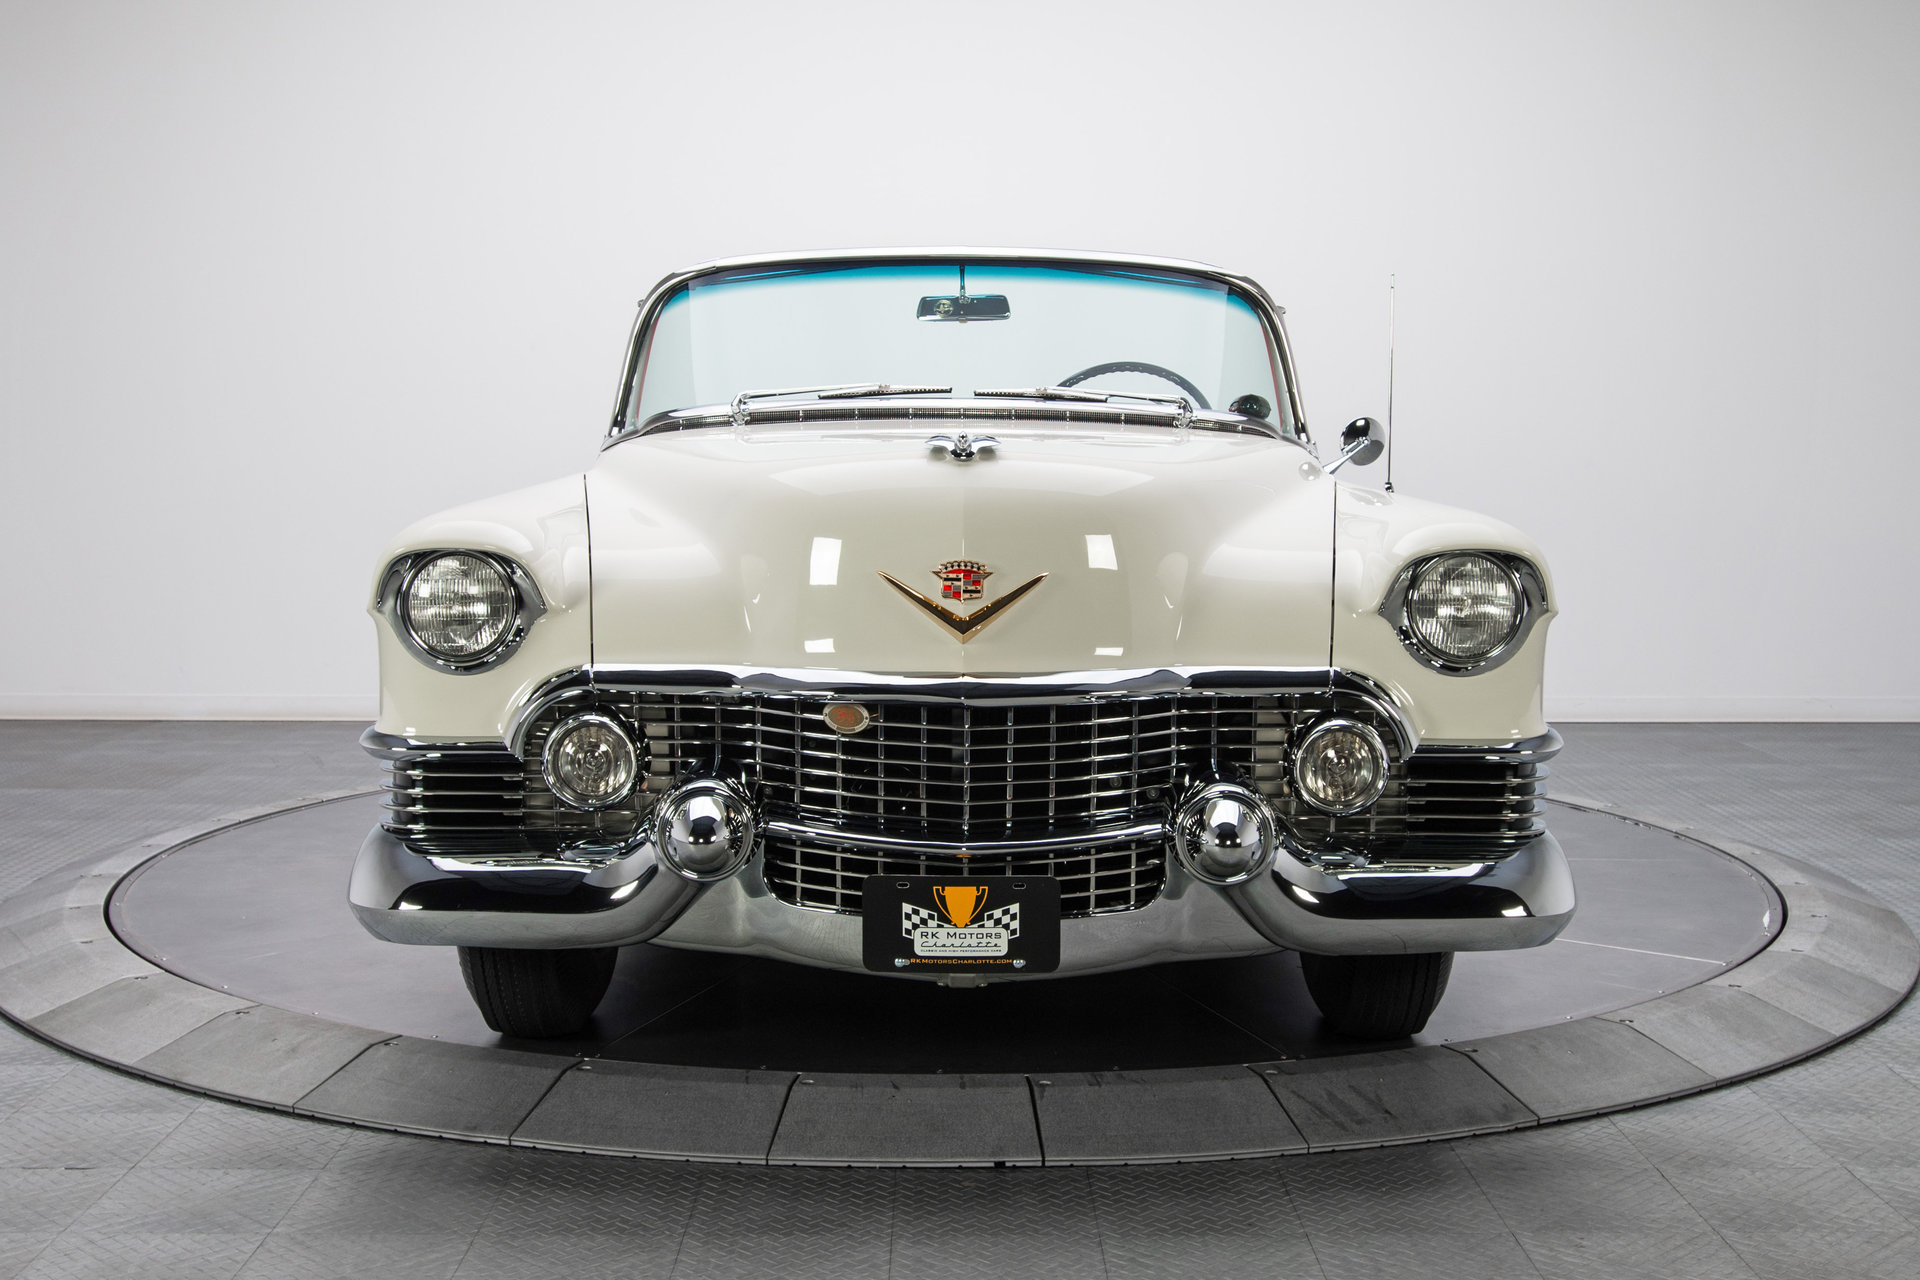 135602 1954 Cadillac Eldorado   RK Motors Classic and Performance         For Sale 1954 Cadillac Eldorado